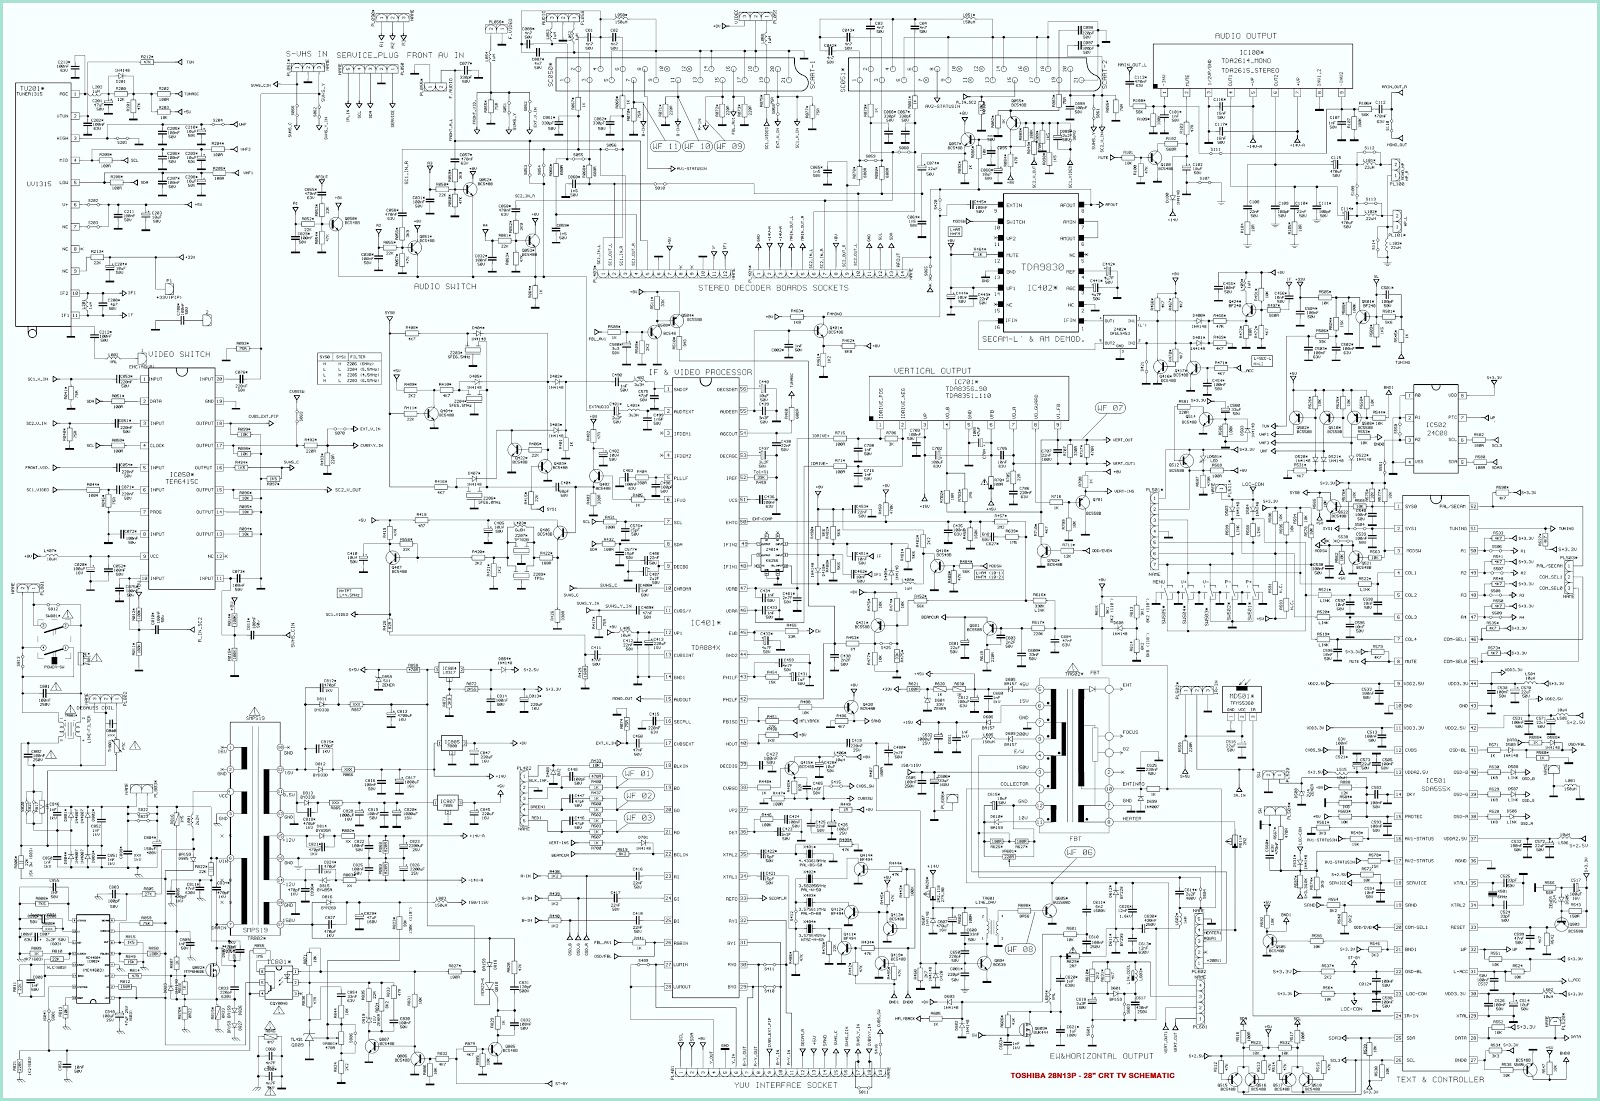 medium resolution of toshiba 28n13p u2013 28 inch crt tv circuit diagram schematic diagramsclick on the schematic to